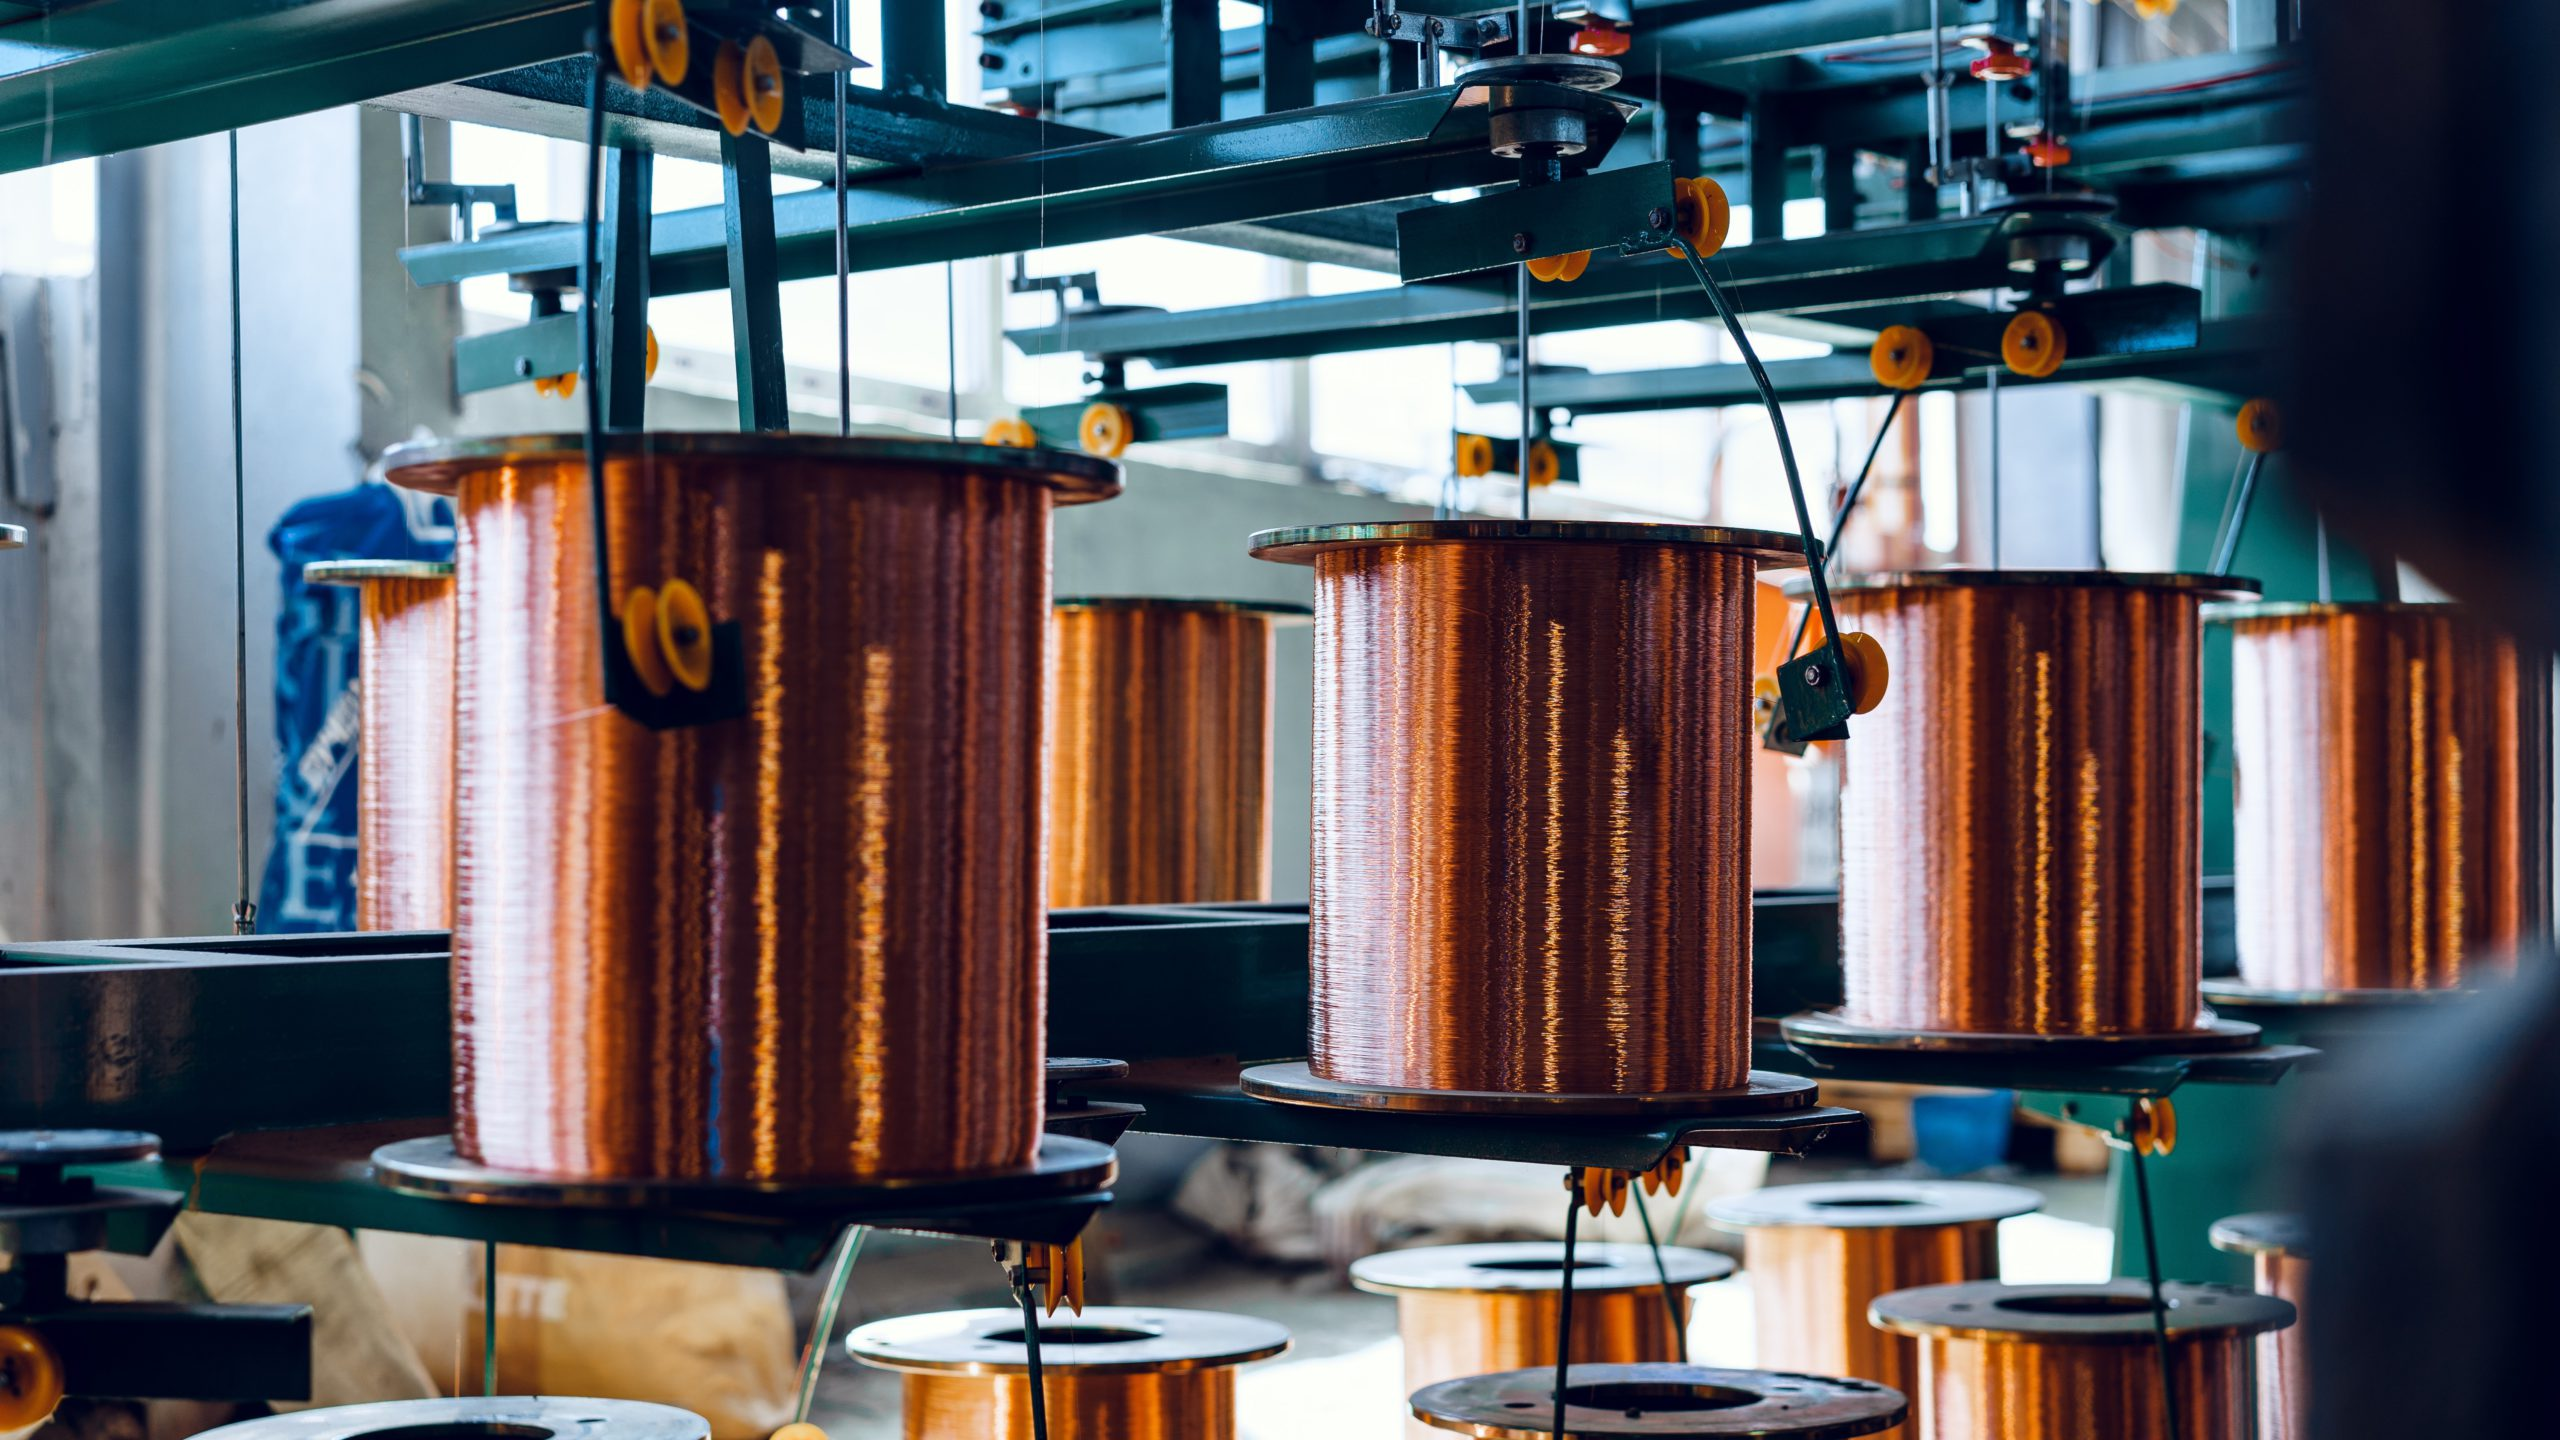 Funds unimpressed by mounting copper supply disruption: Andy Home